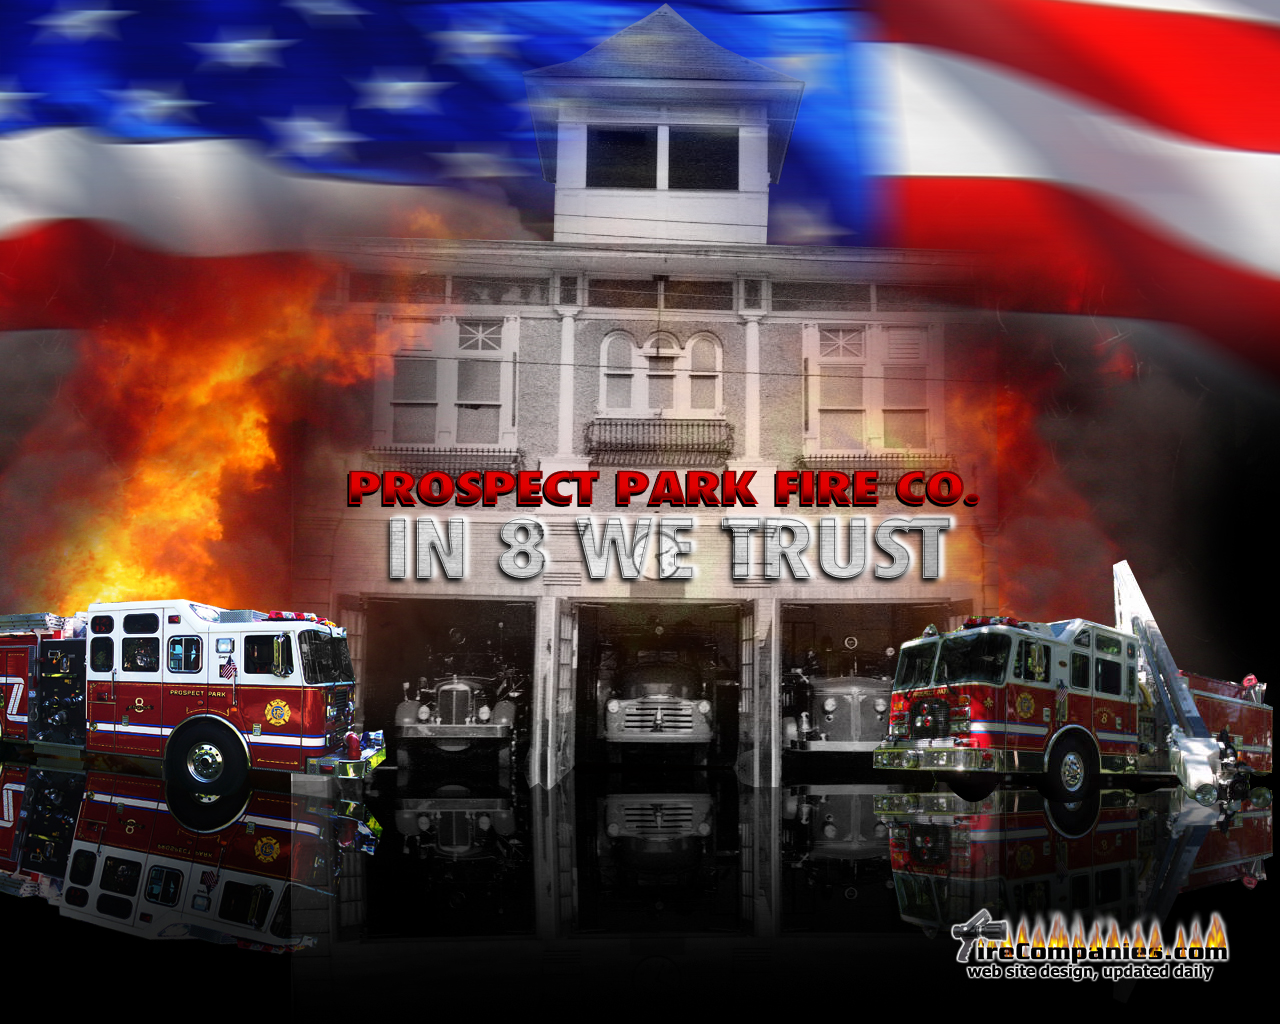 Fire fighter firefighter wallpapers and firefighter backgrounds fire fighter firefighter wallpapers and firefighter backgrounds 1280x1024 voltagebd Images